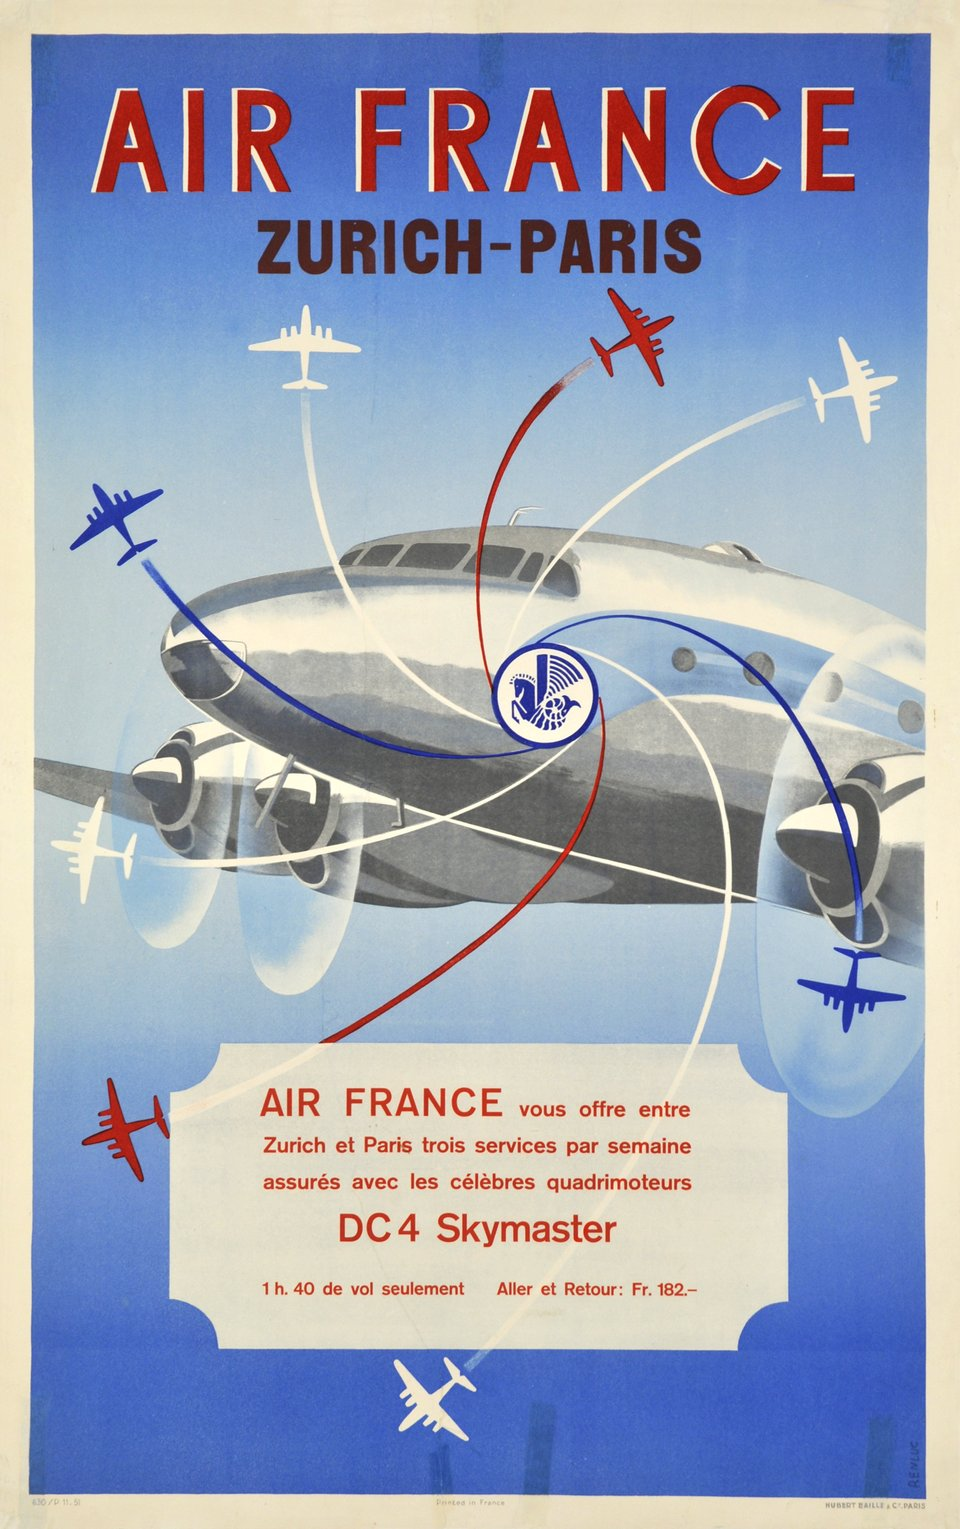 Air France, Zürich-Paris, DC4 Skymaster – Affiche ancienne –  RENLUC – 1951